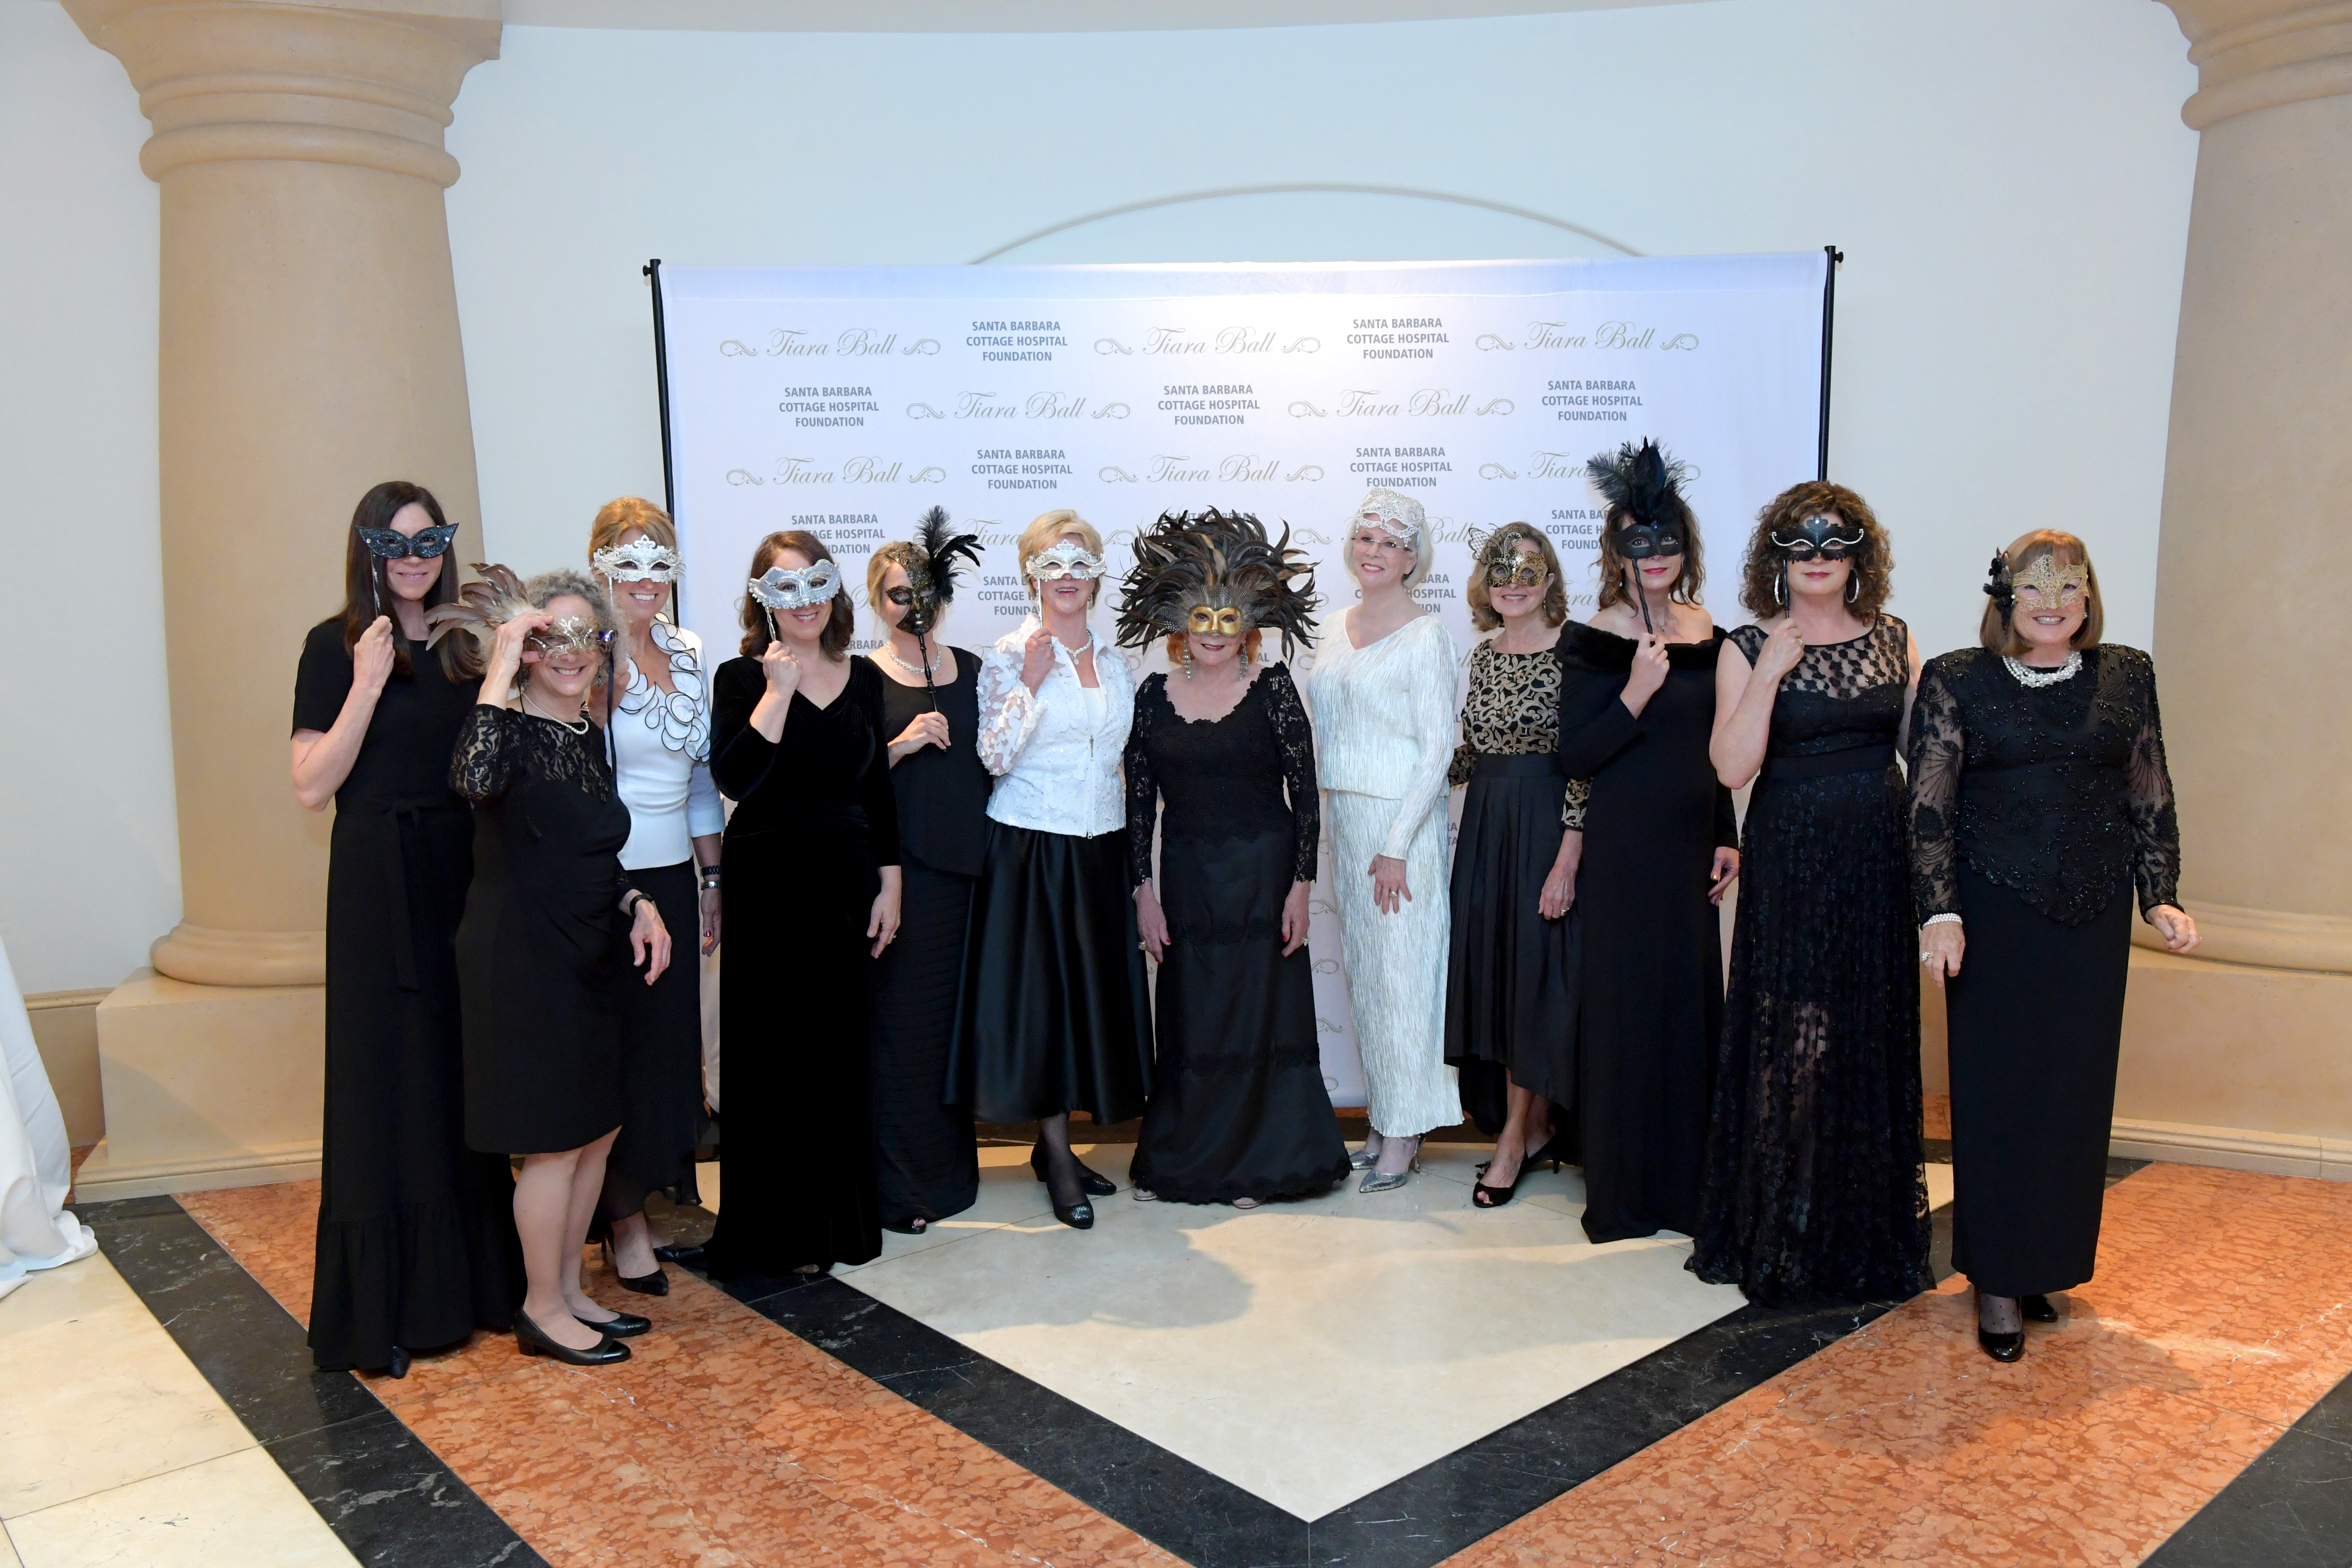 Tiara Ball Committee includes: Mari McAlister, Audrie Krause, Magda Stayton, Mary Werft, Lisa Iscovich, Gerd Jordano, Lady Leslie Ridley-Tree, Alexandra Nourse, Virginia Barkley, Katy Bazylewicz, Betsy Turner, Lynn Nakasone, Margaret Wilkinson.